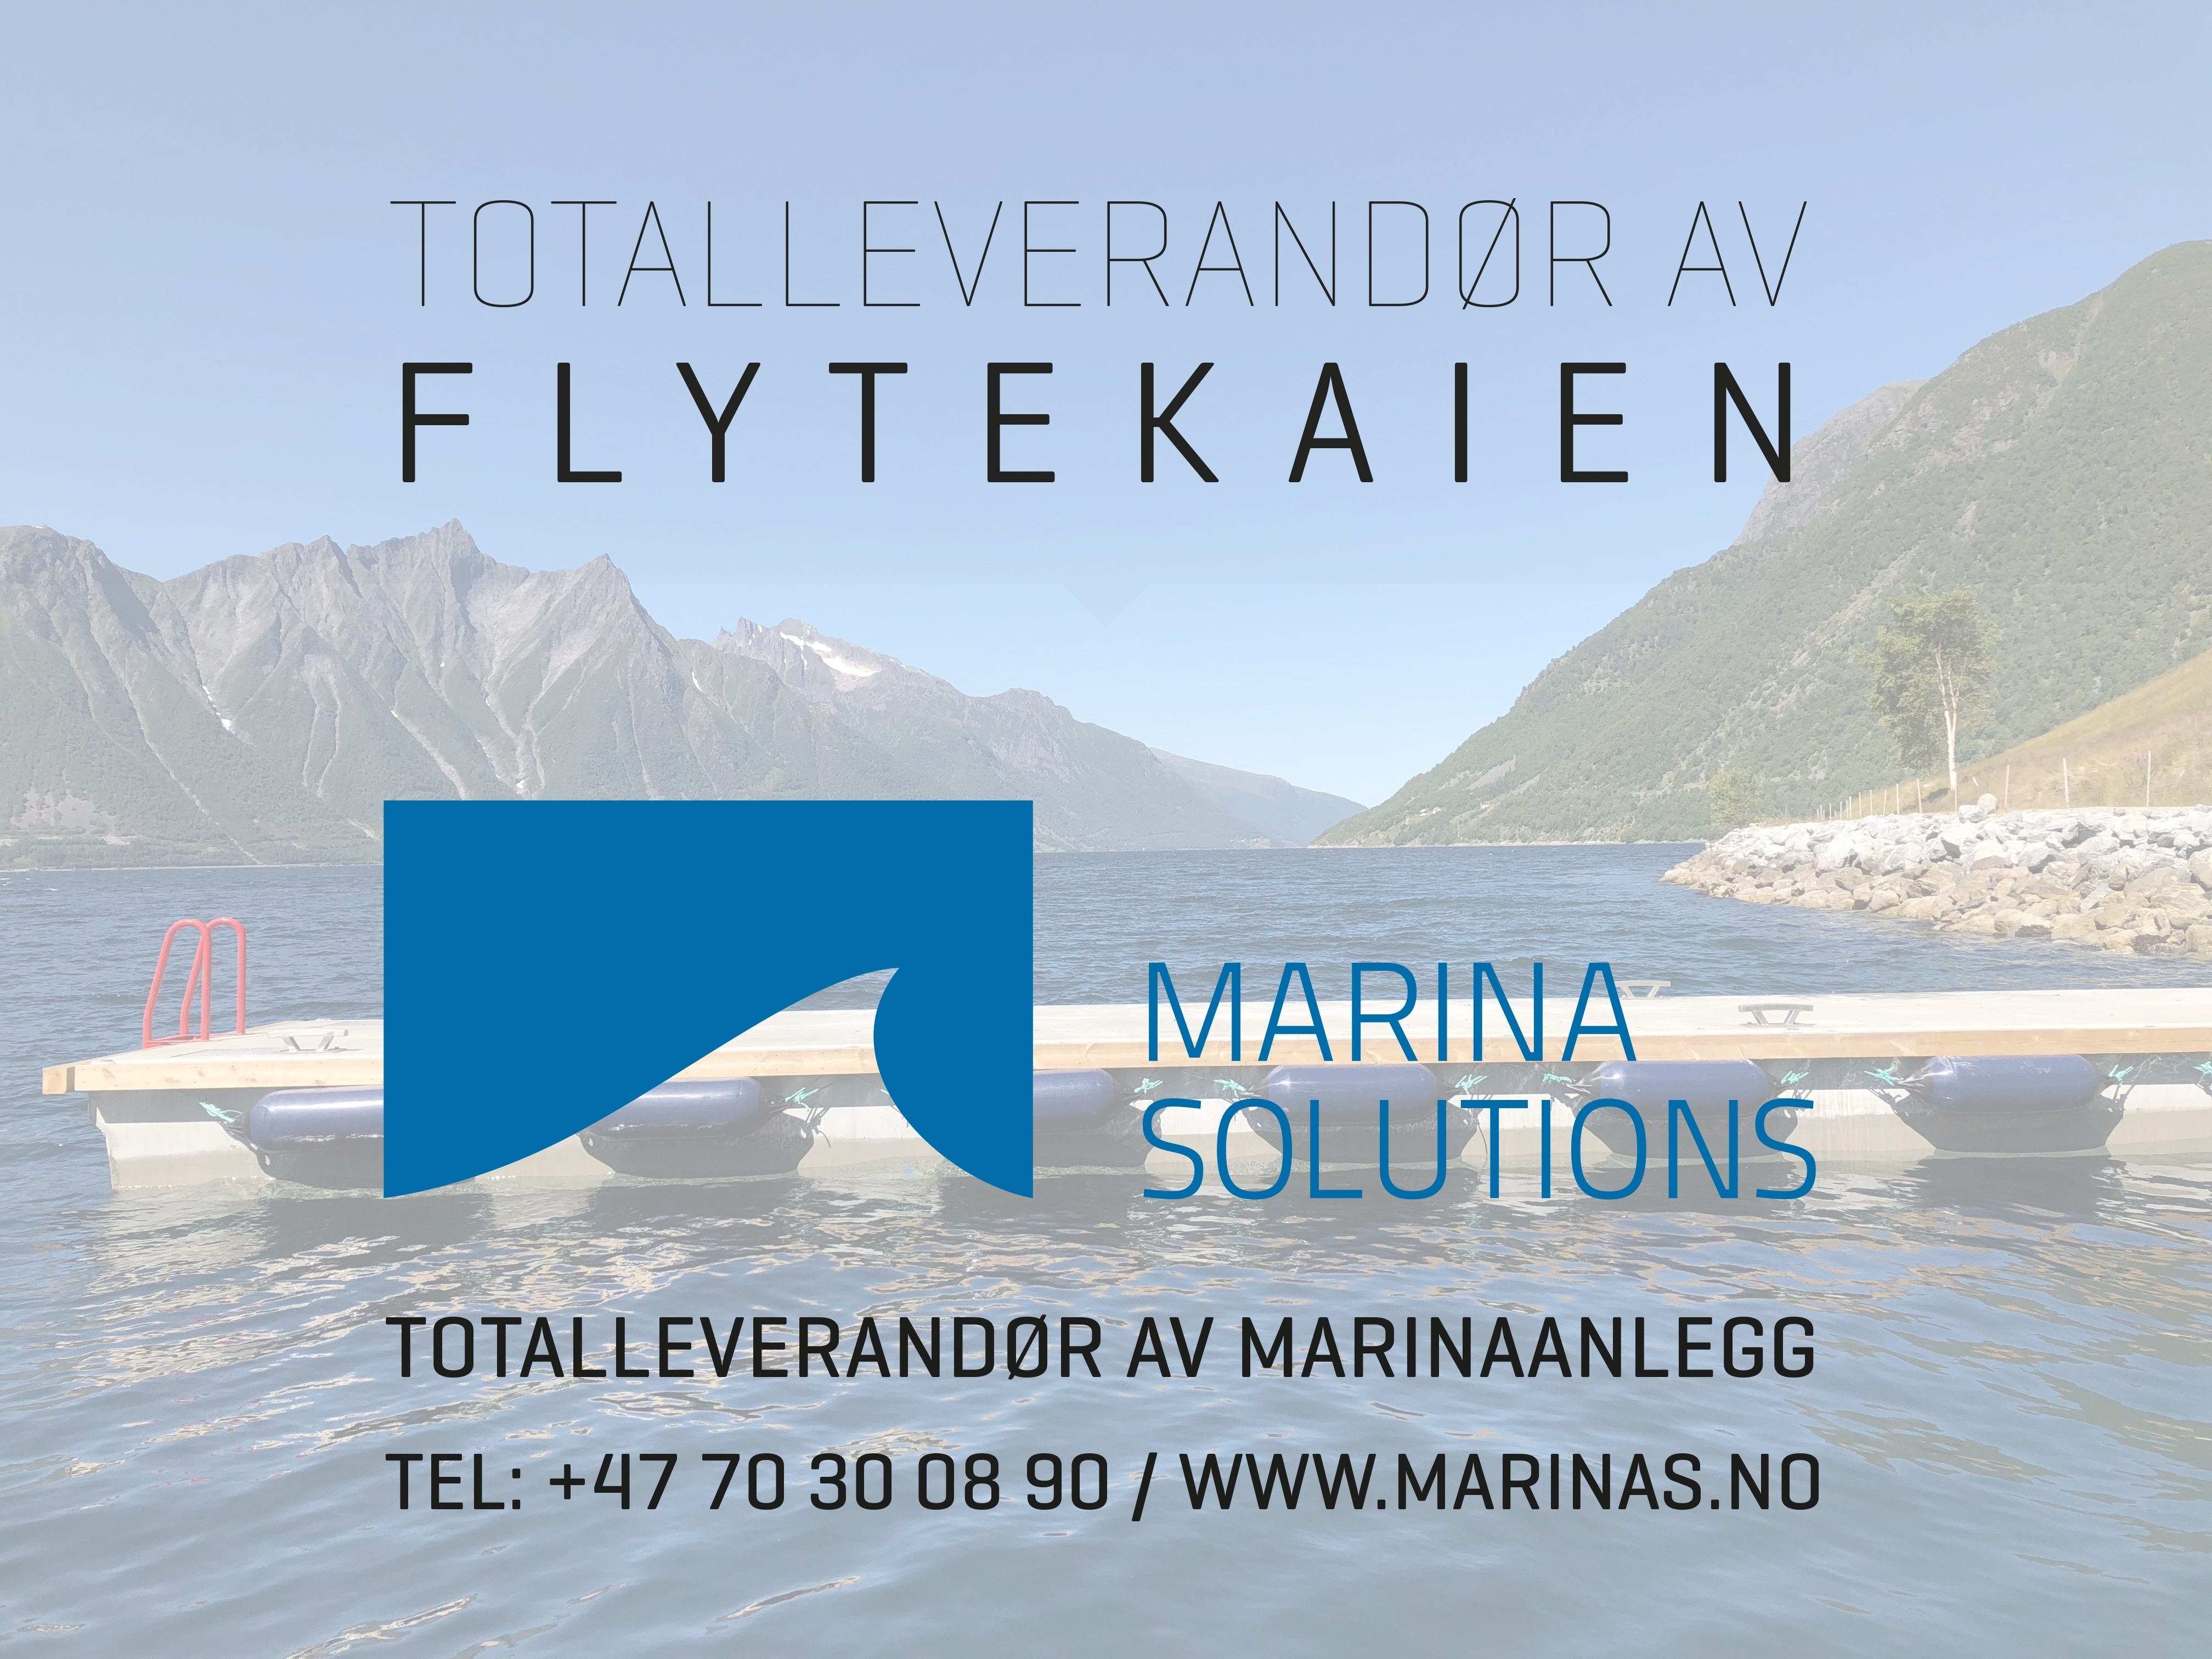 https://marinasolutions.no/uploads/totalleverandør.jpg